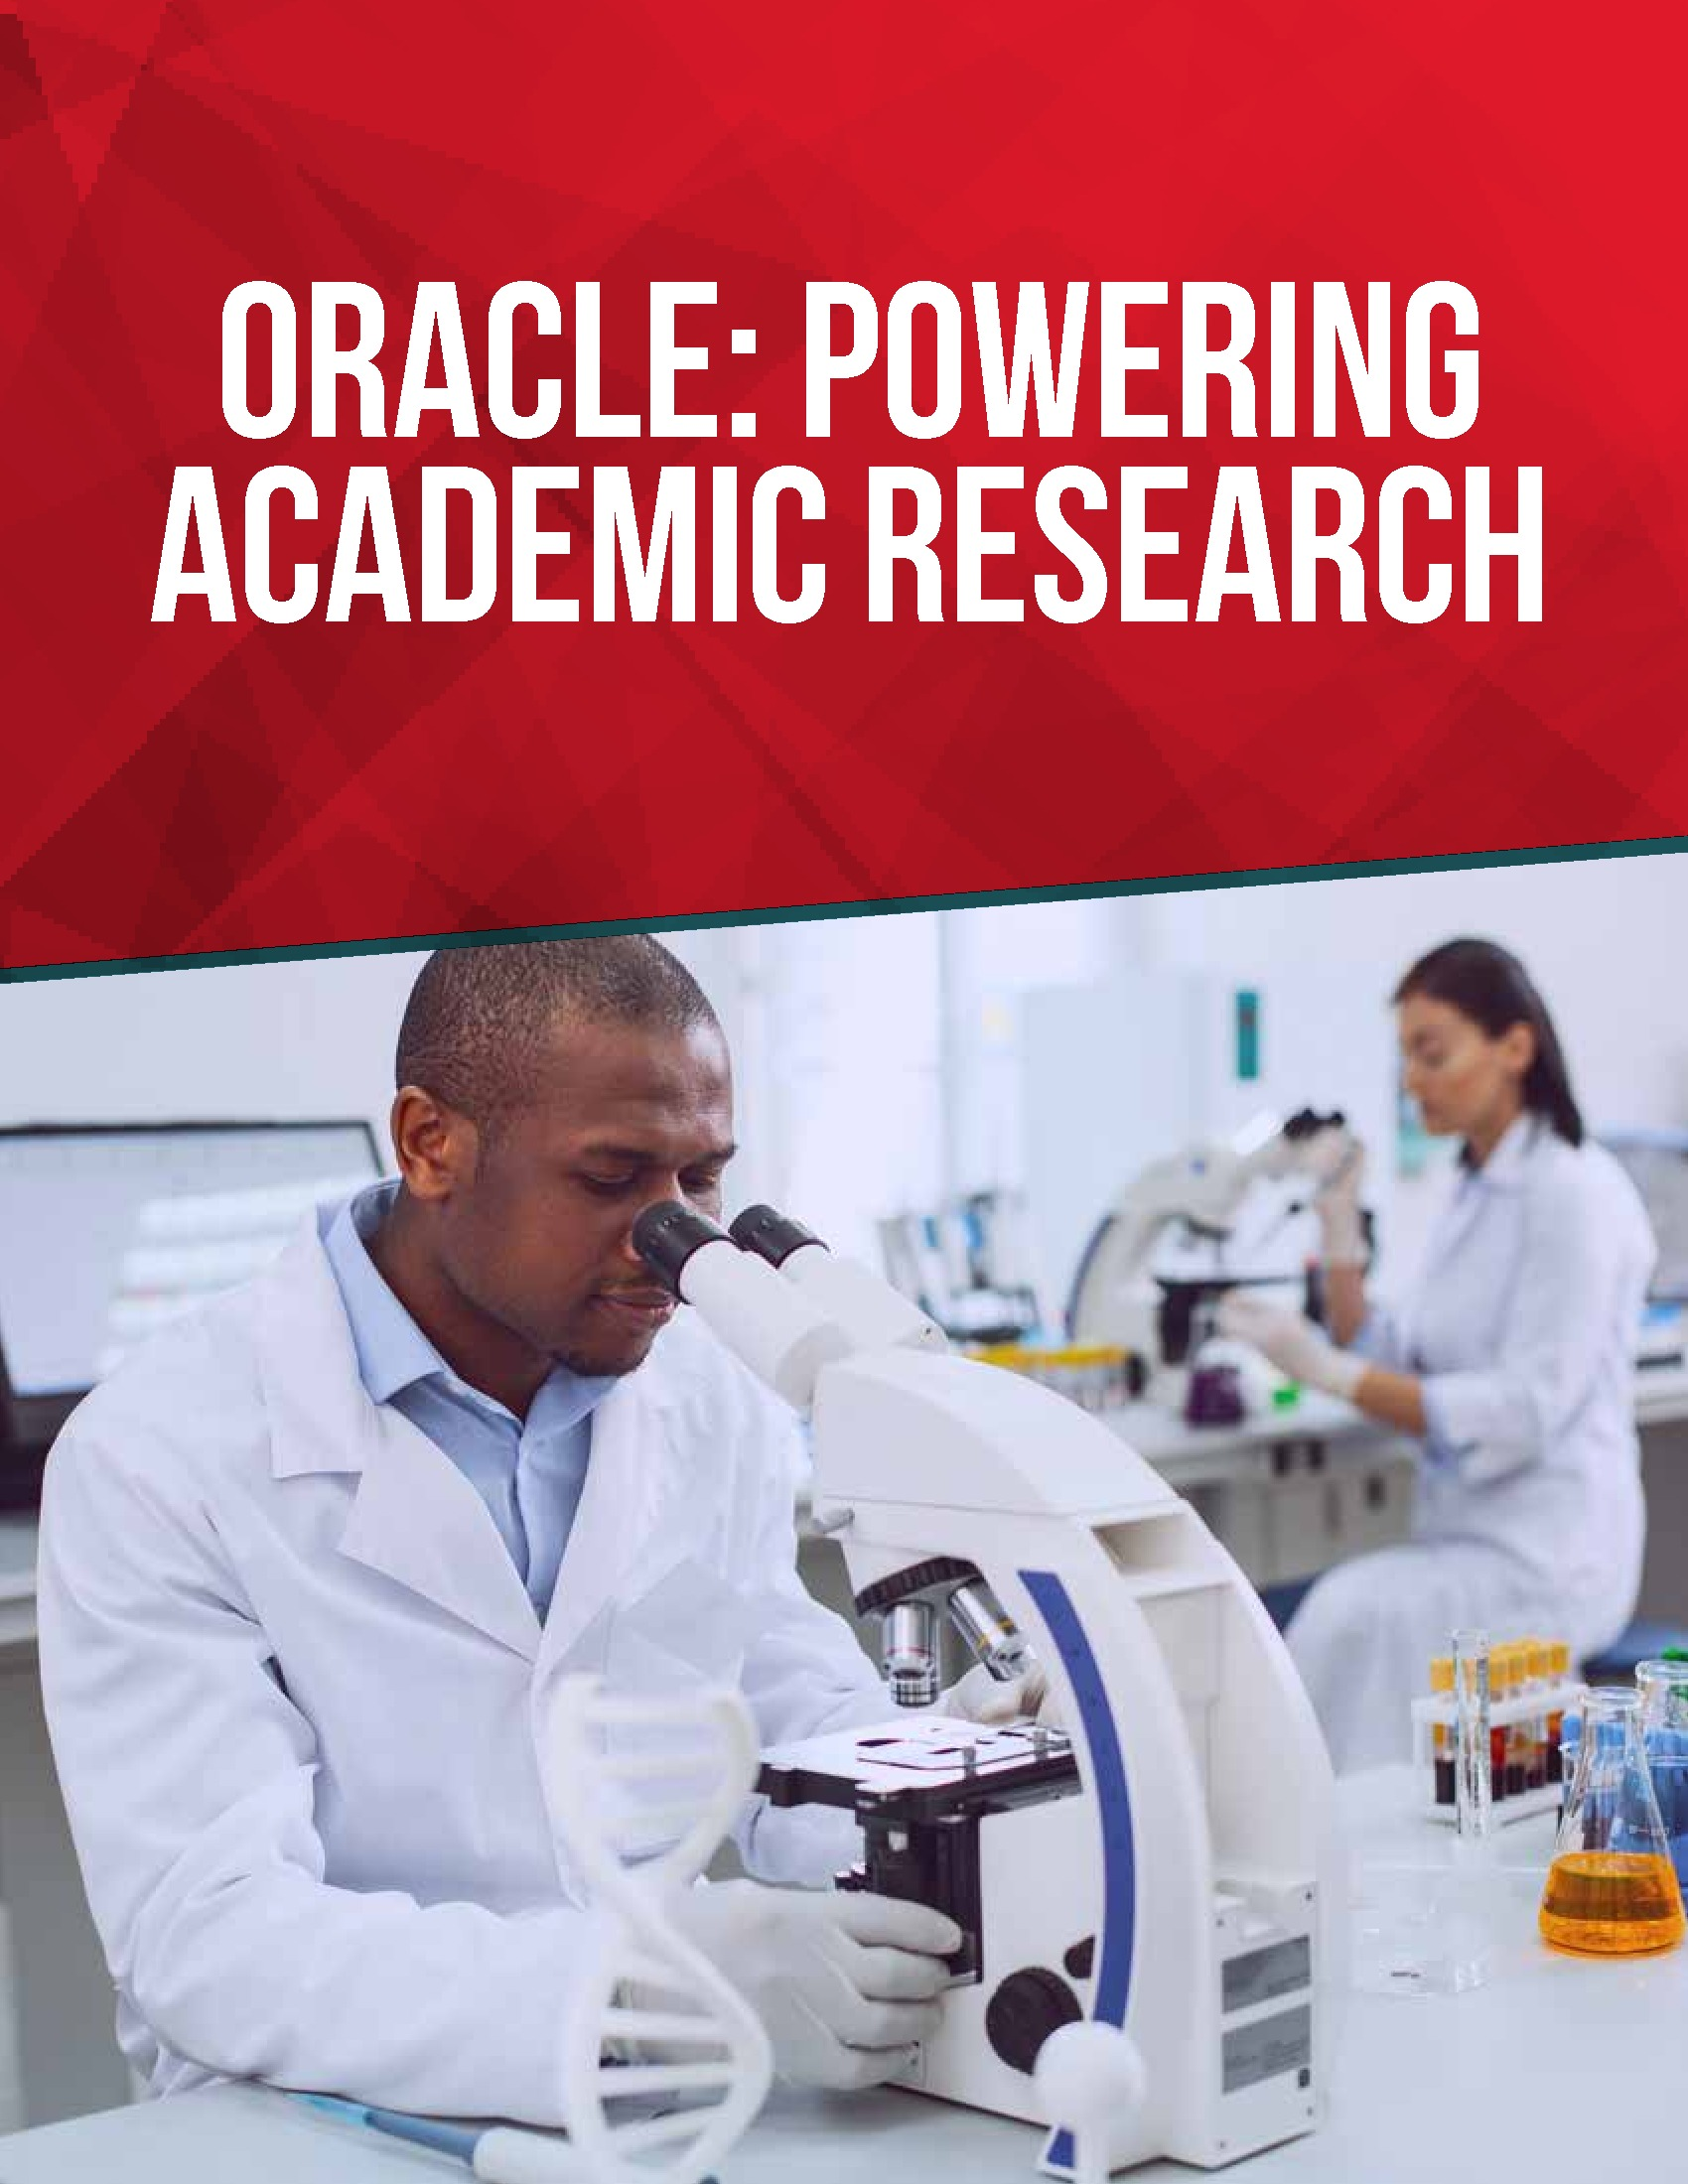 Oracle: Powering Academic Research